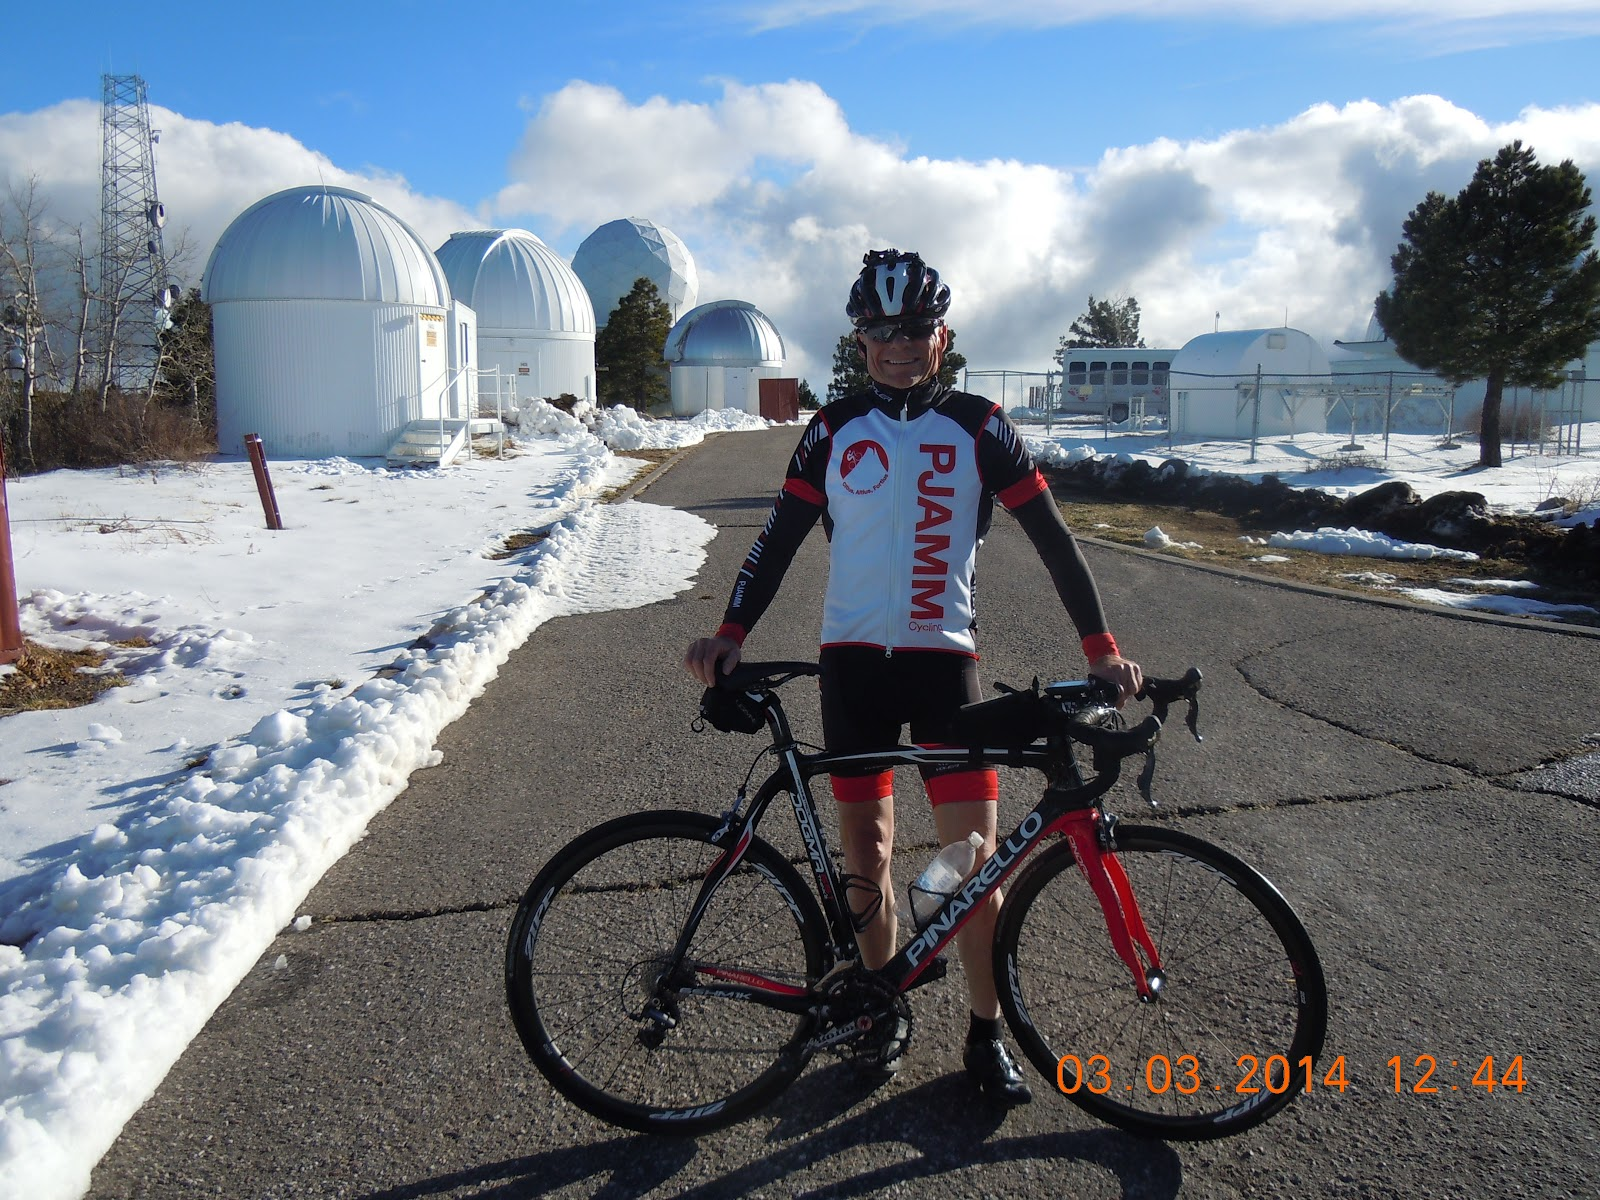 Mt Lemmon Observatories - road bike climb to the top